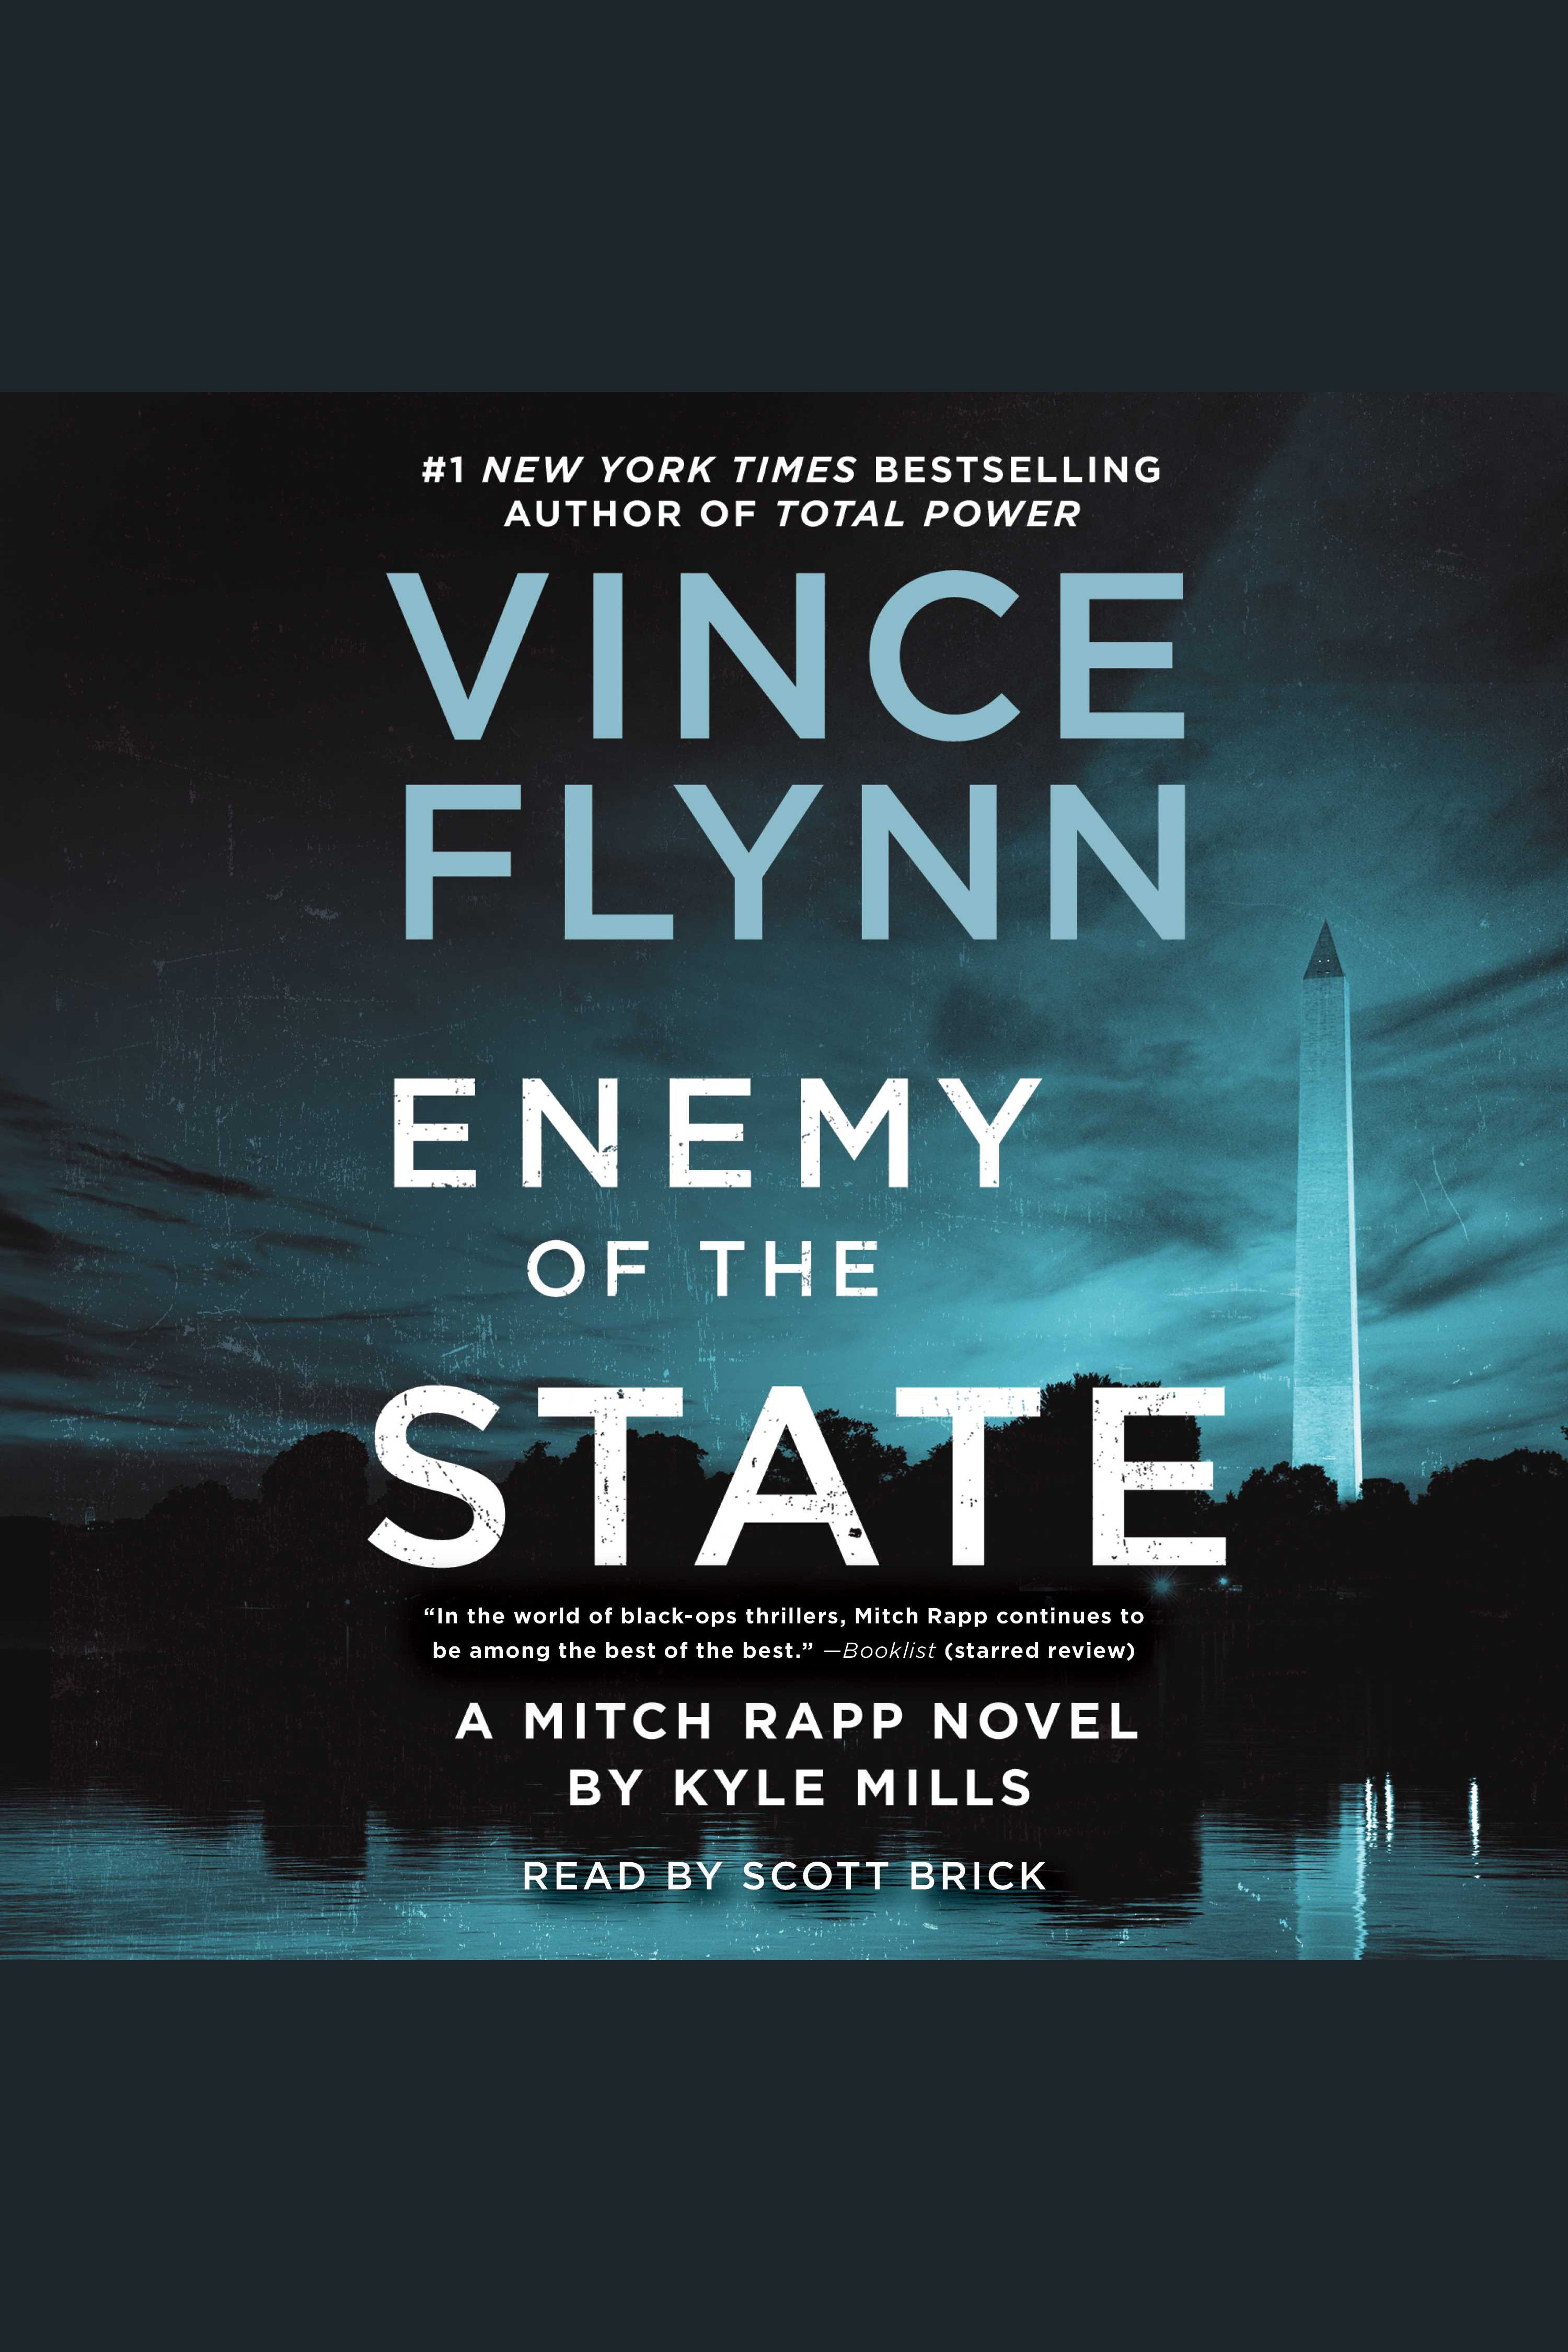 Enemy of the state cover image